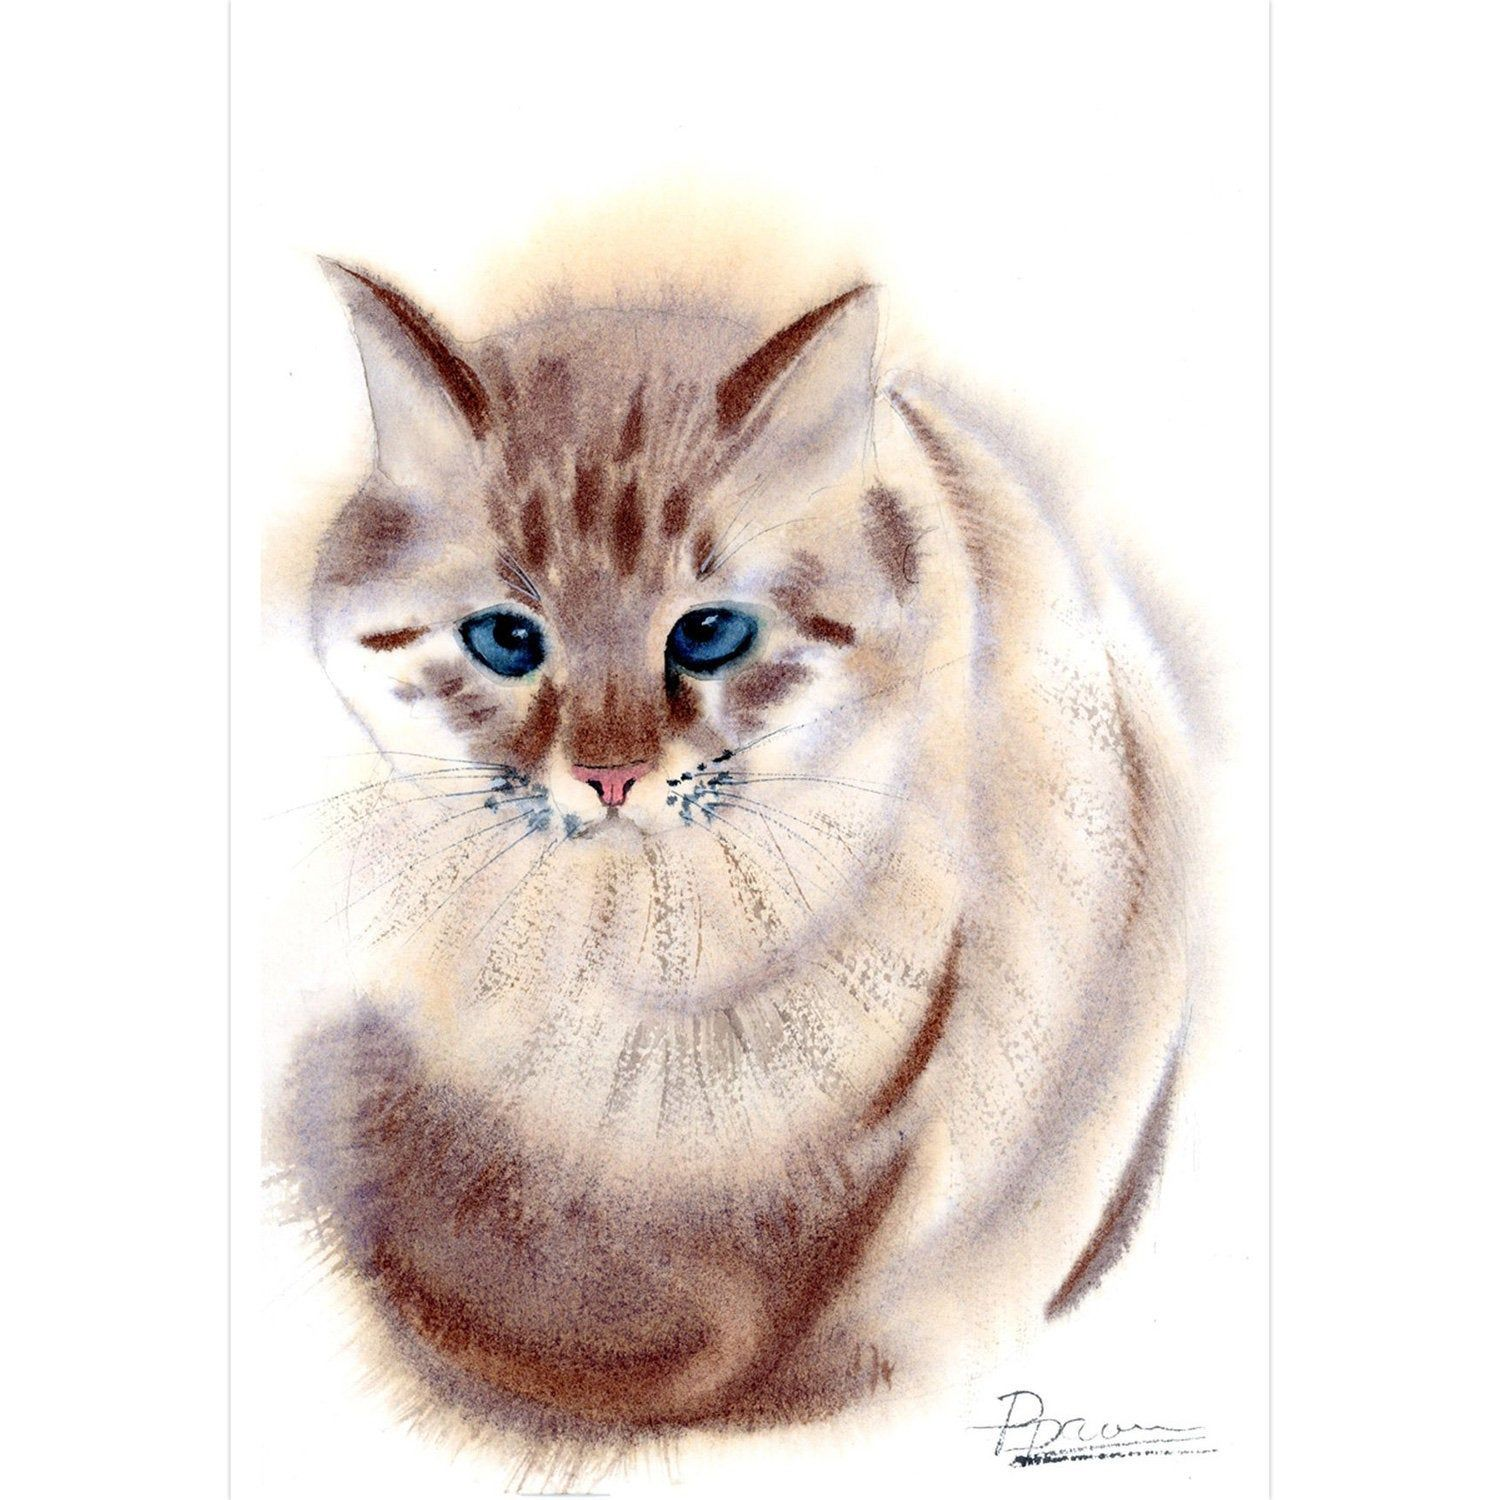 Cat Painting Original Watercolor Wall Art Room Decor Animal On White Background Sitting Kitten Artwork Gift By Pa Cat Painting Original Paintings Artwork Gifts